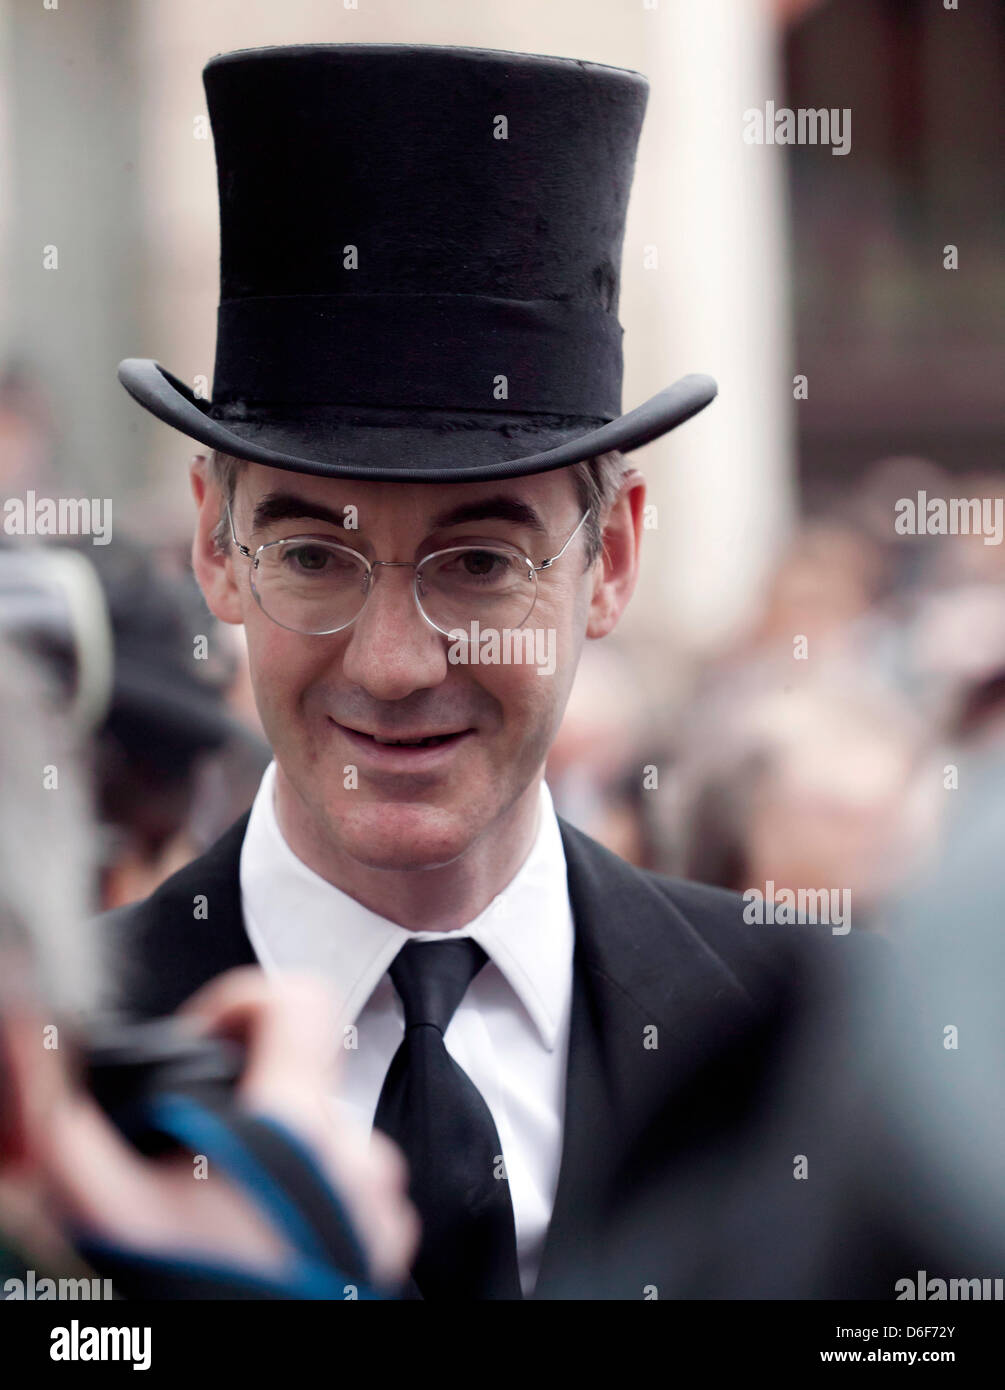 Jacob Rees-Mogg, wearing a top hat, waits to enter St Paul's Cathedral for Baroness Thatcher funeral - Stock Image